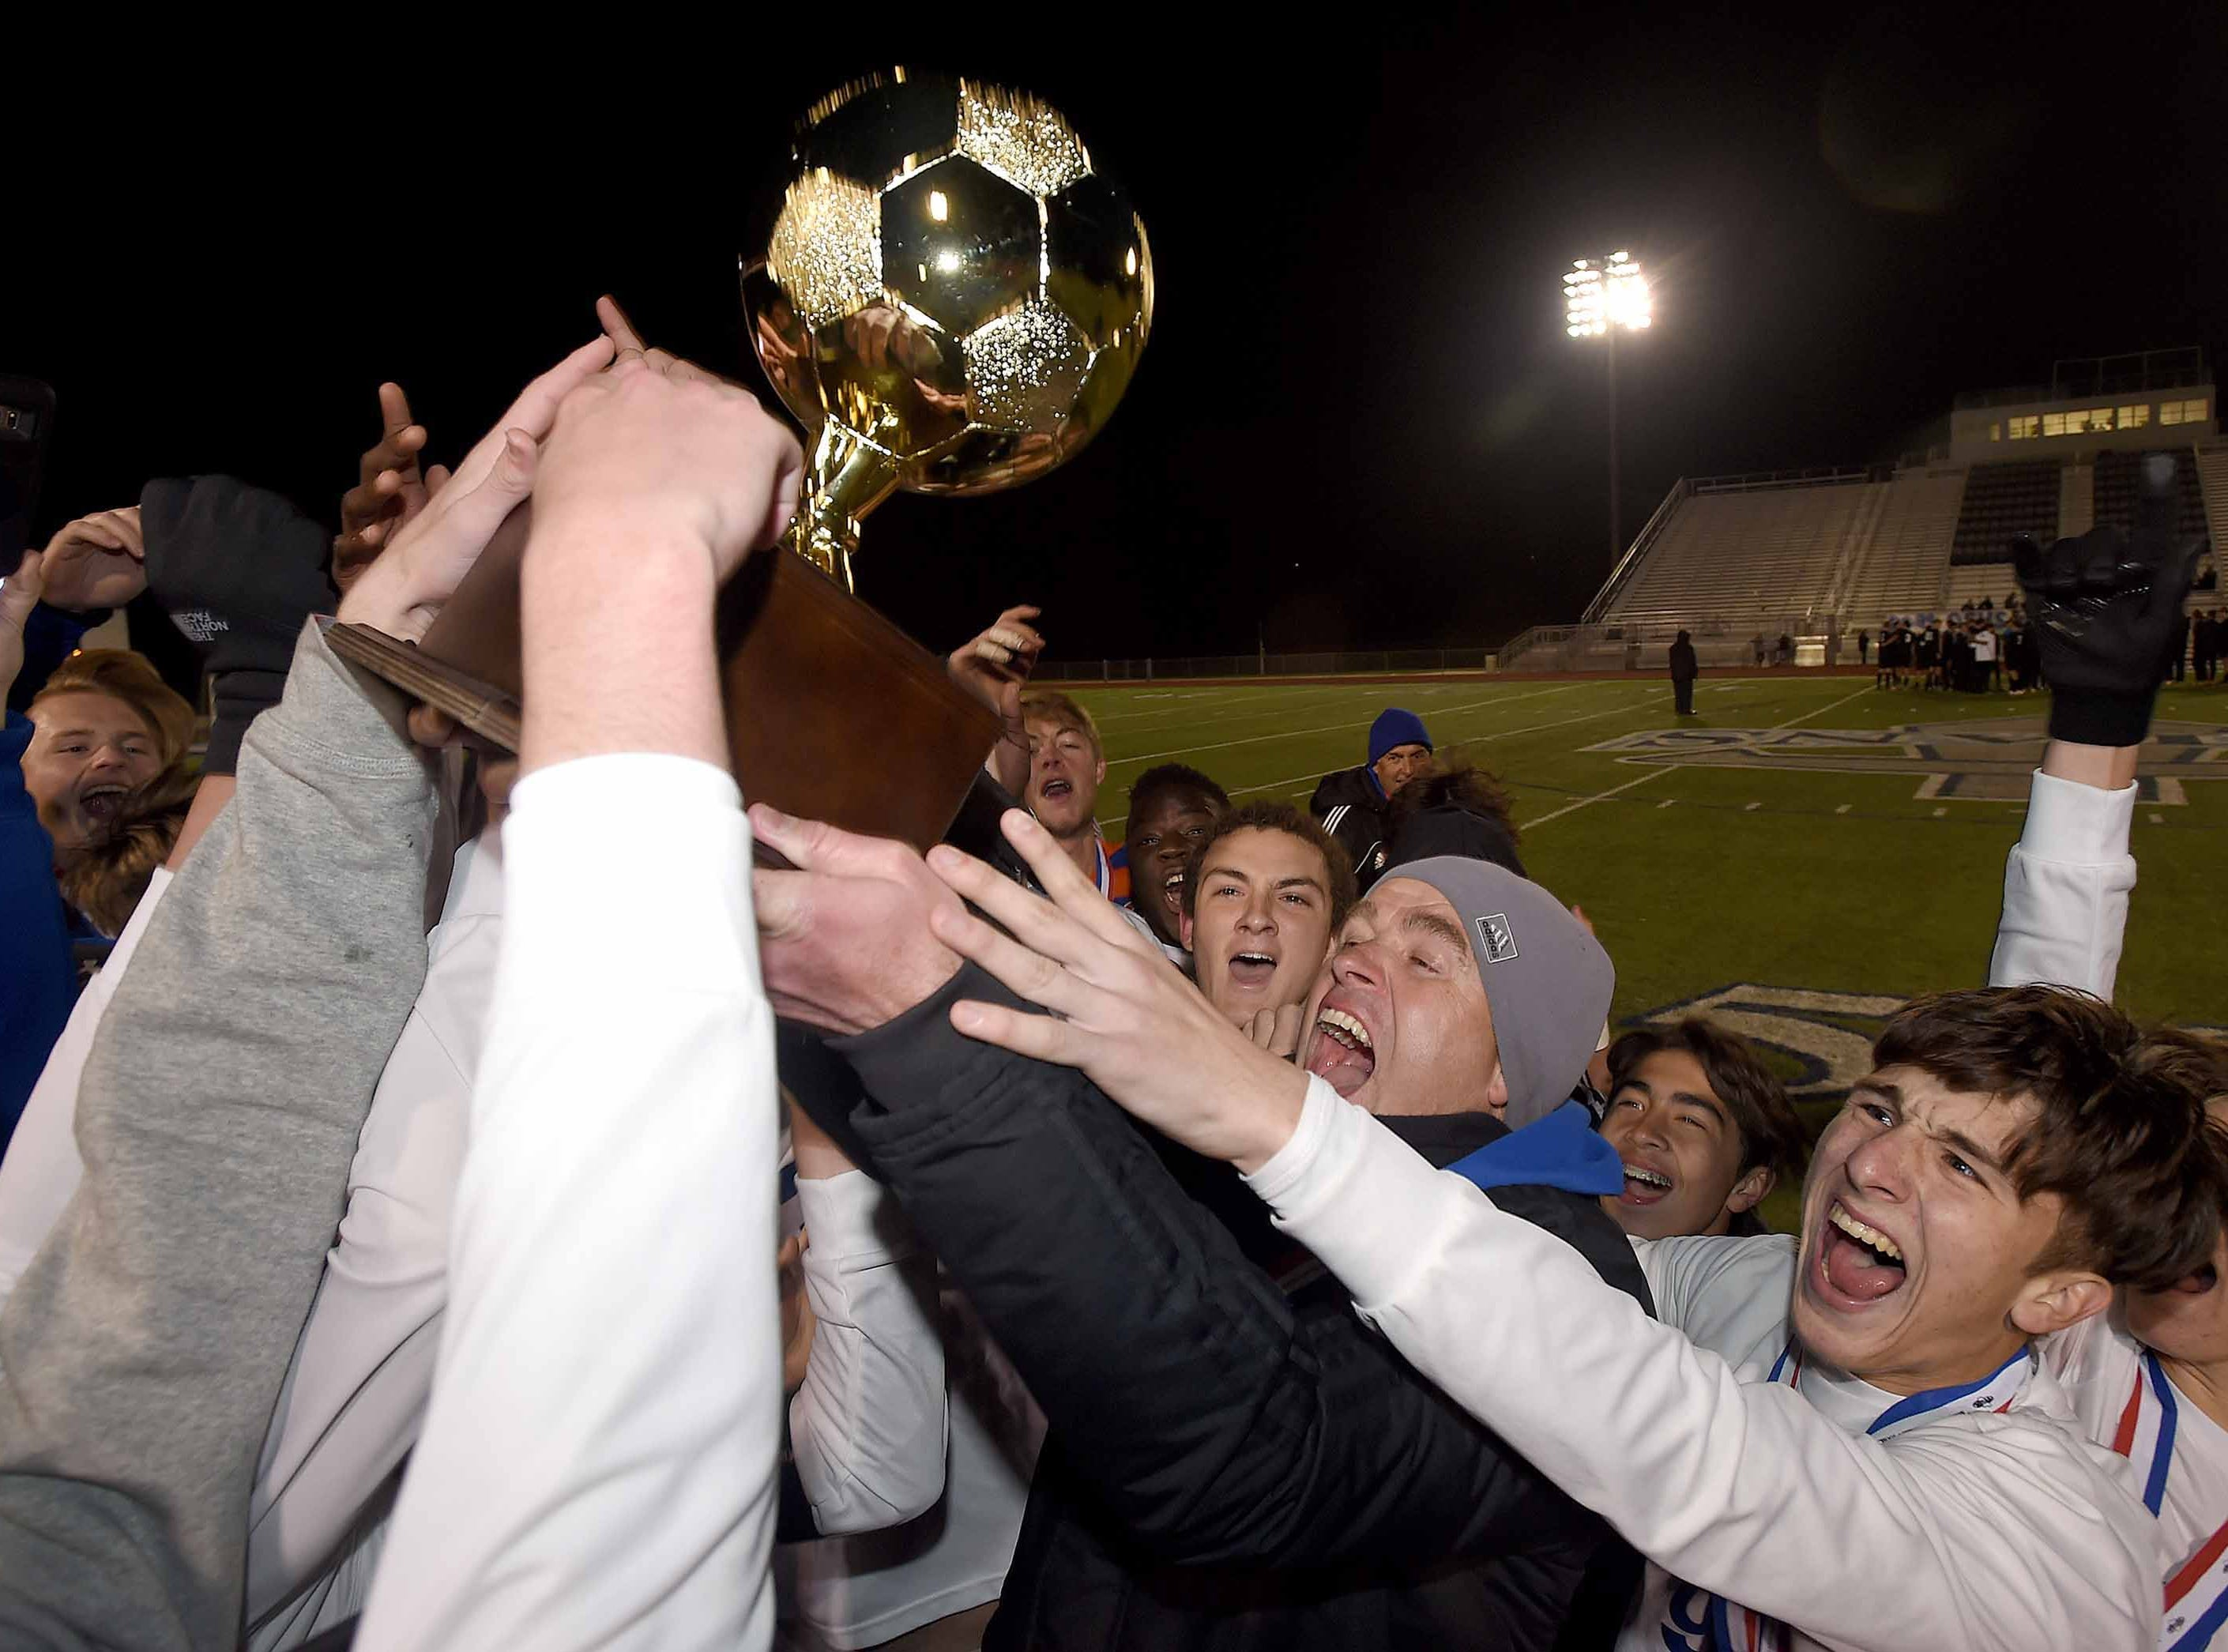 The Gulfport Admirals and head coach Henrik Madsen celebrate with the Class 6A state championship trophy after defending their 2018 state title beating Northwest Rankin 2-1 in the MHSAA BlueCross Blue Shield of Mississippi Soccer Classic on Saturday, February 9, 2019, at Ridgeland High School in Ridgeland, Miss.